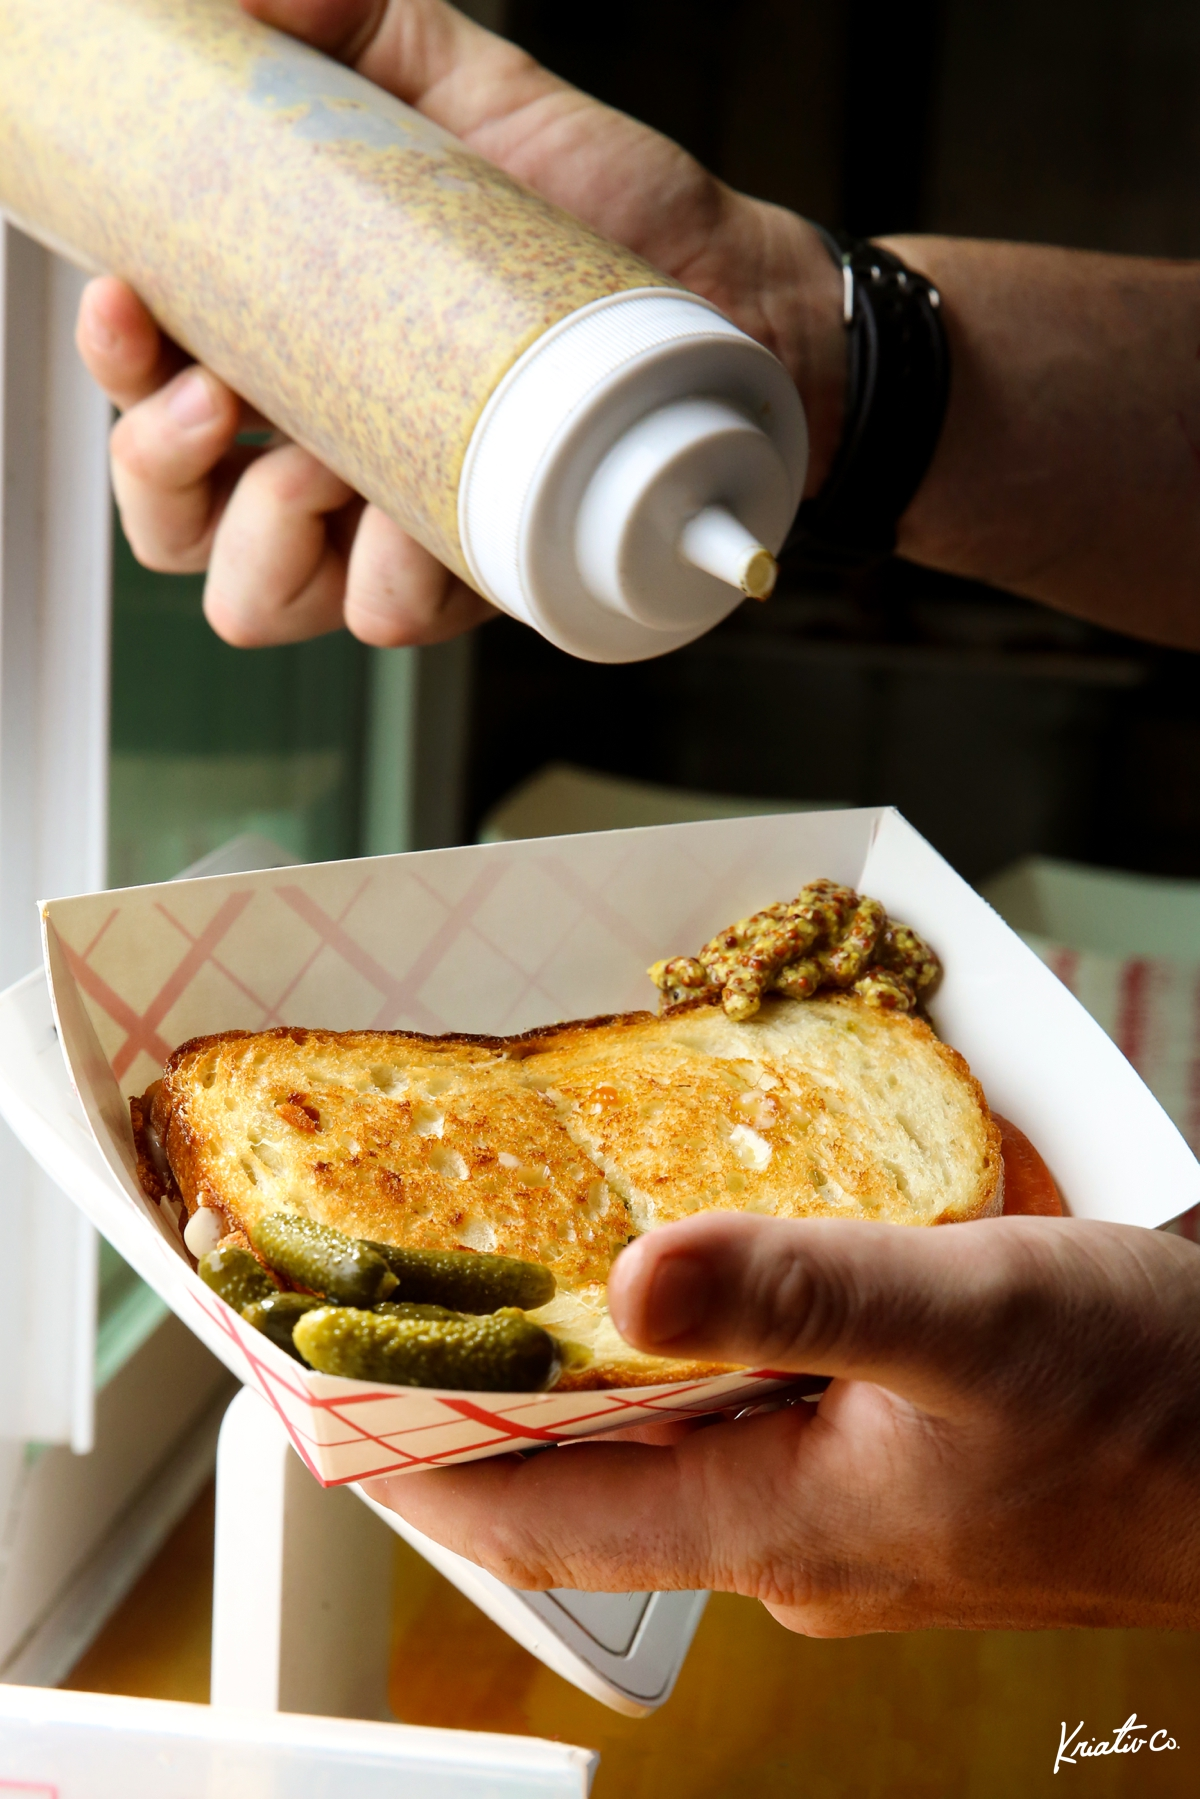 Kriativ_Co_Food_Commercial_Photography_CheeseTruck_Blog_09.jpg